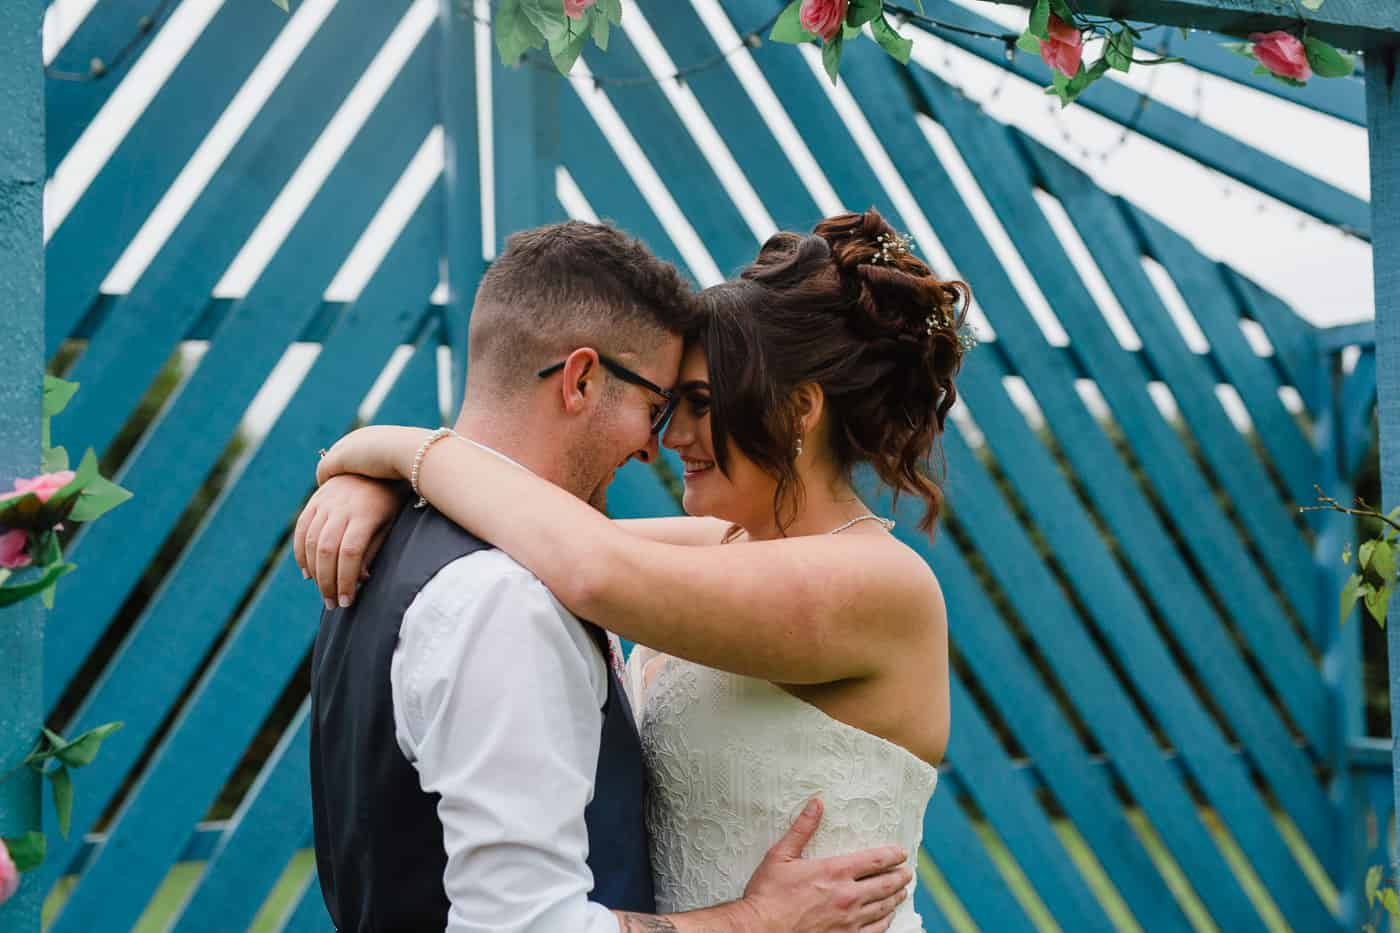 Coach House bride and groom cuddling